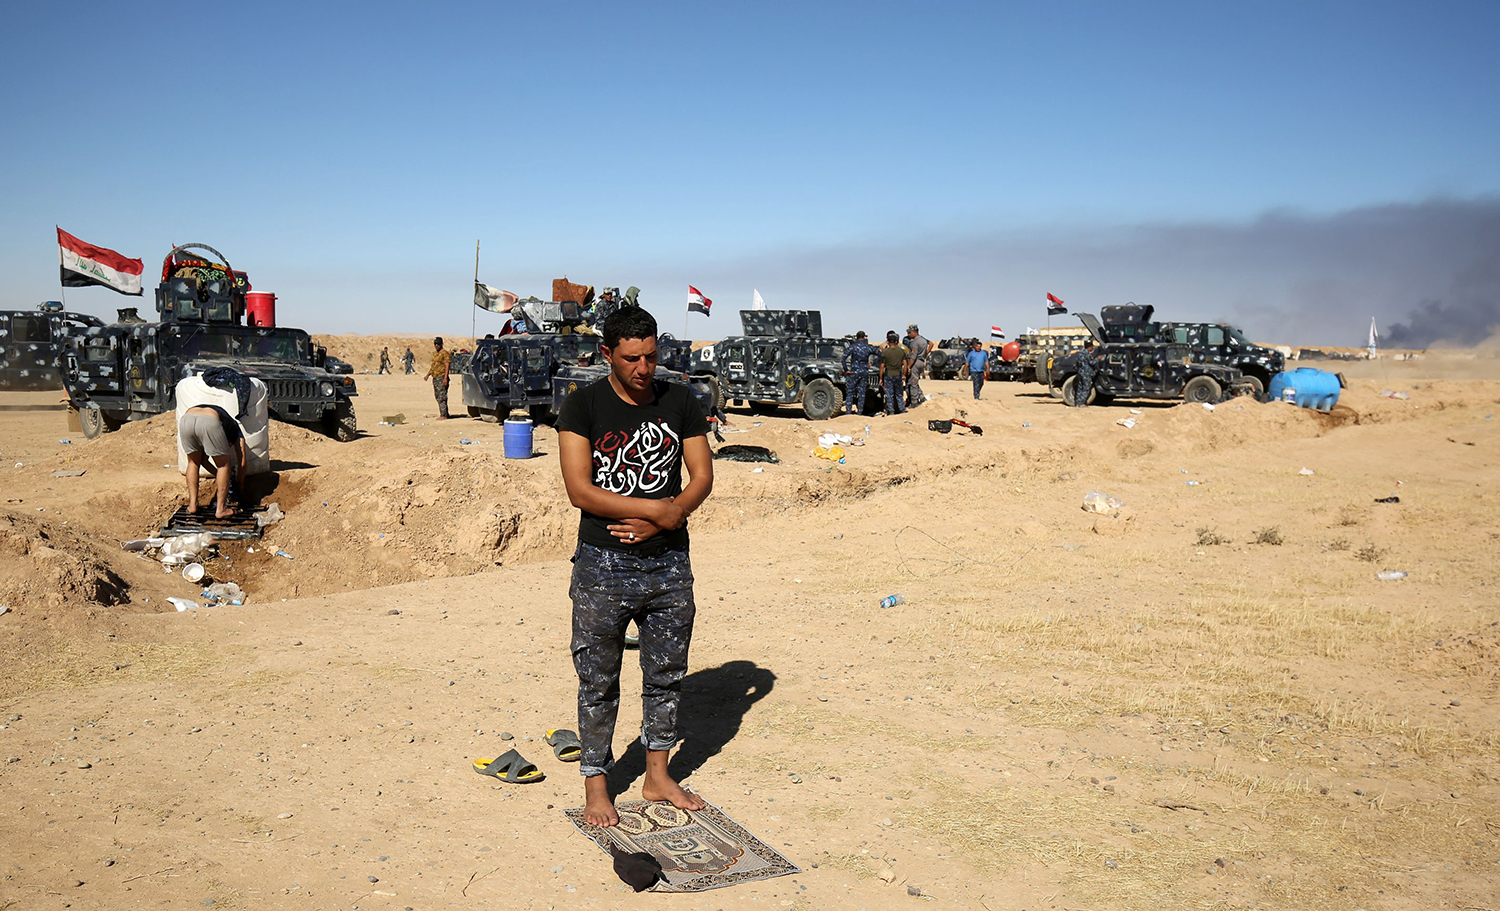 A Sunni Iraqi policeman prays at the Qayyarah military base, about 60 kilometres (35 miles) south of Mosul, on October 16, 2016, as they prepare for an offensive to retake Mosul, the last IS-held city in the country, after regaining much of the territory the jihadists seized in 2014 and 2015. / AFP PHOTO / AHMAD AL-RUBAYE / TT / kod 444